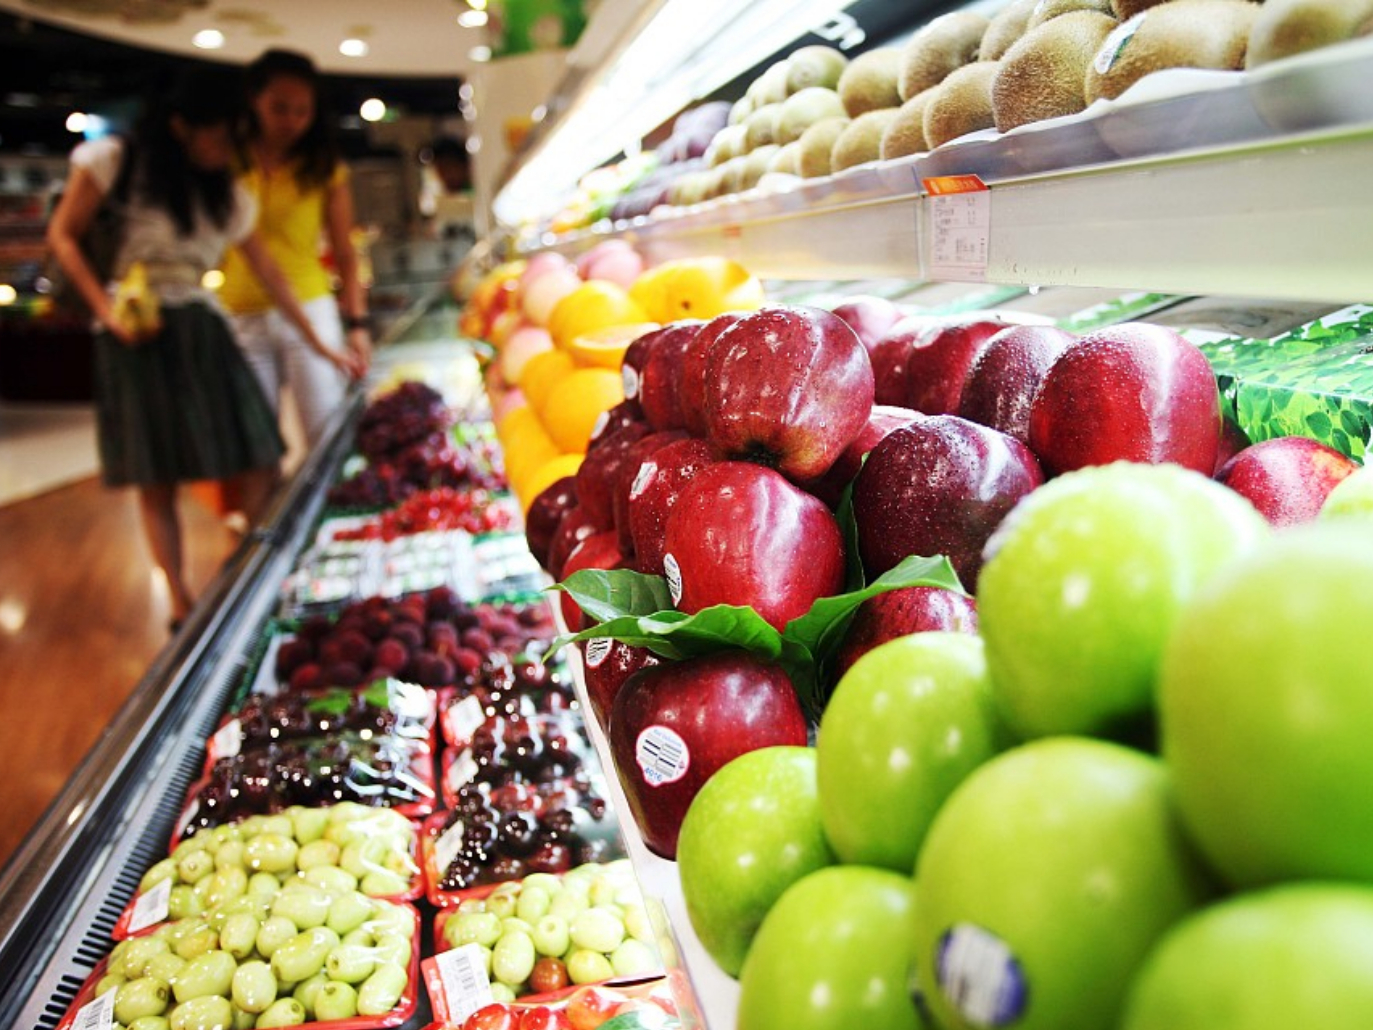 Chinese imports of US foodstuff may resume